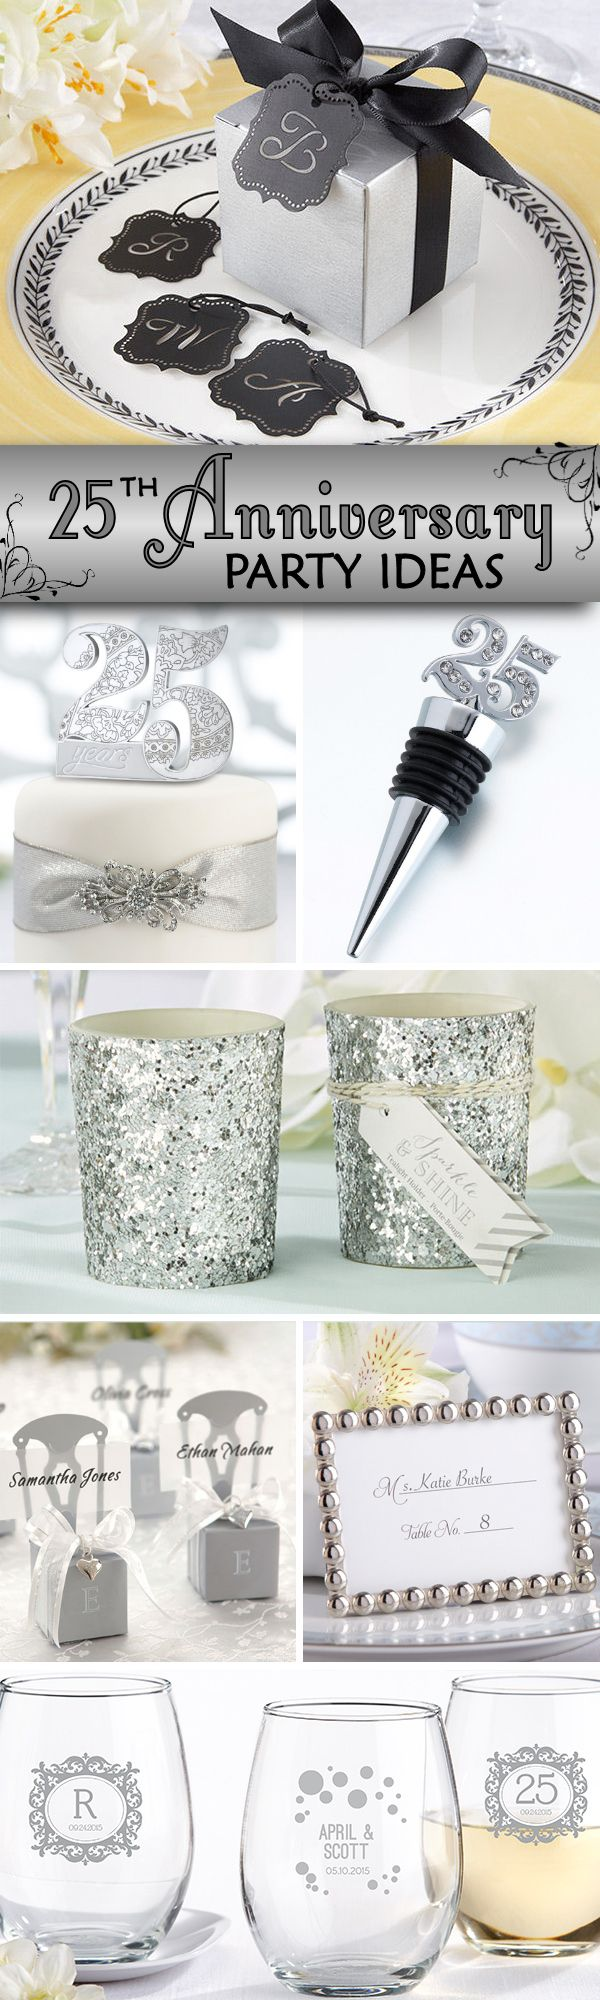 25th Wedding Anniversary Party Favors & Supplies - add some sparkle to your event!